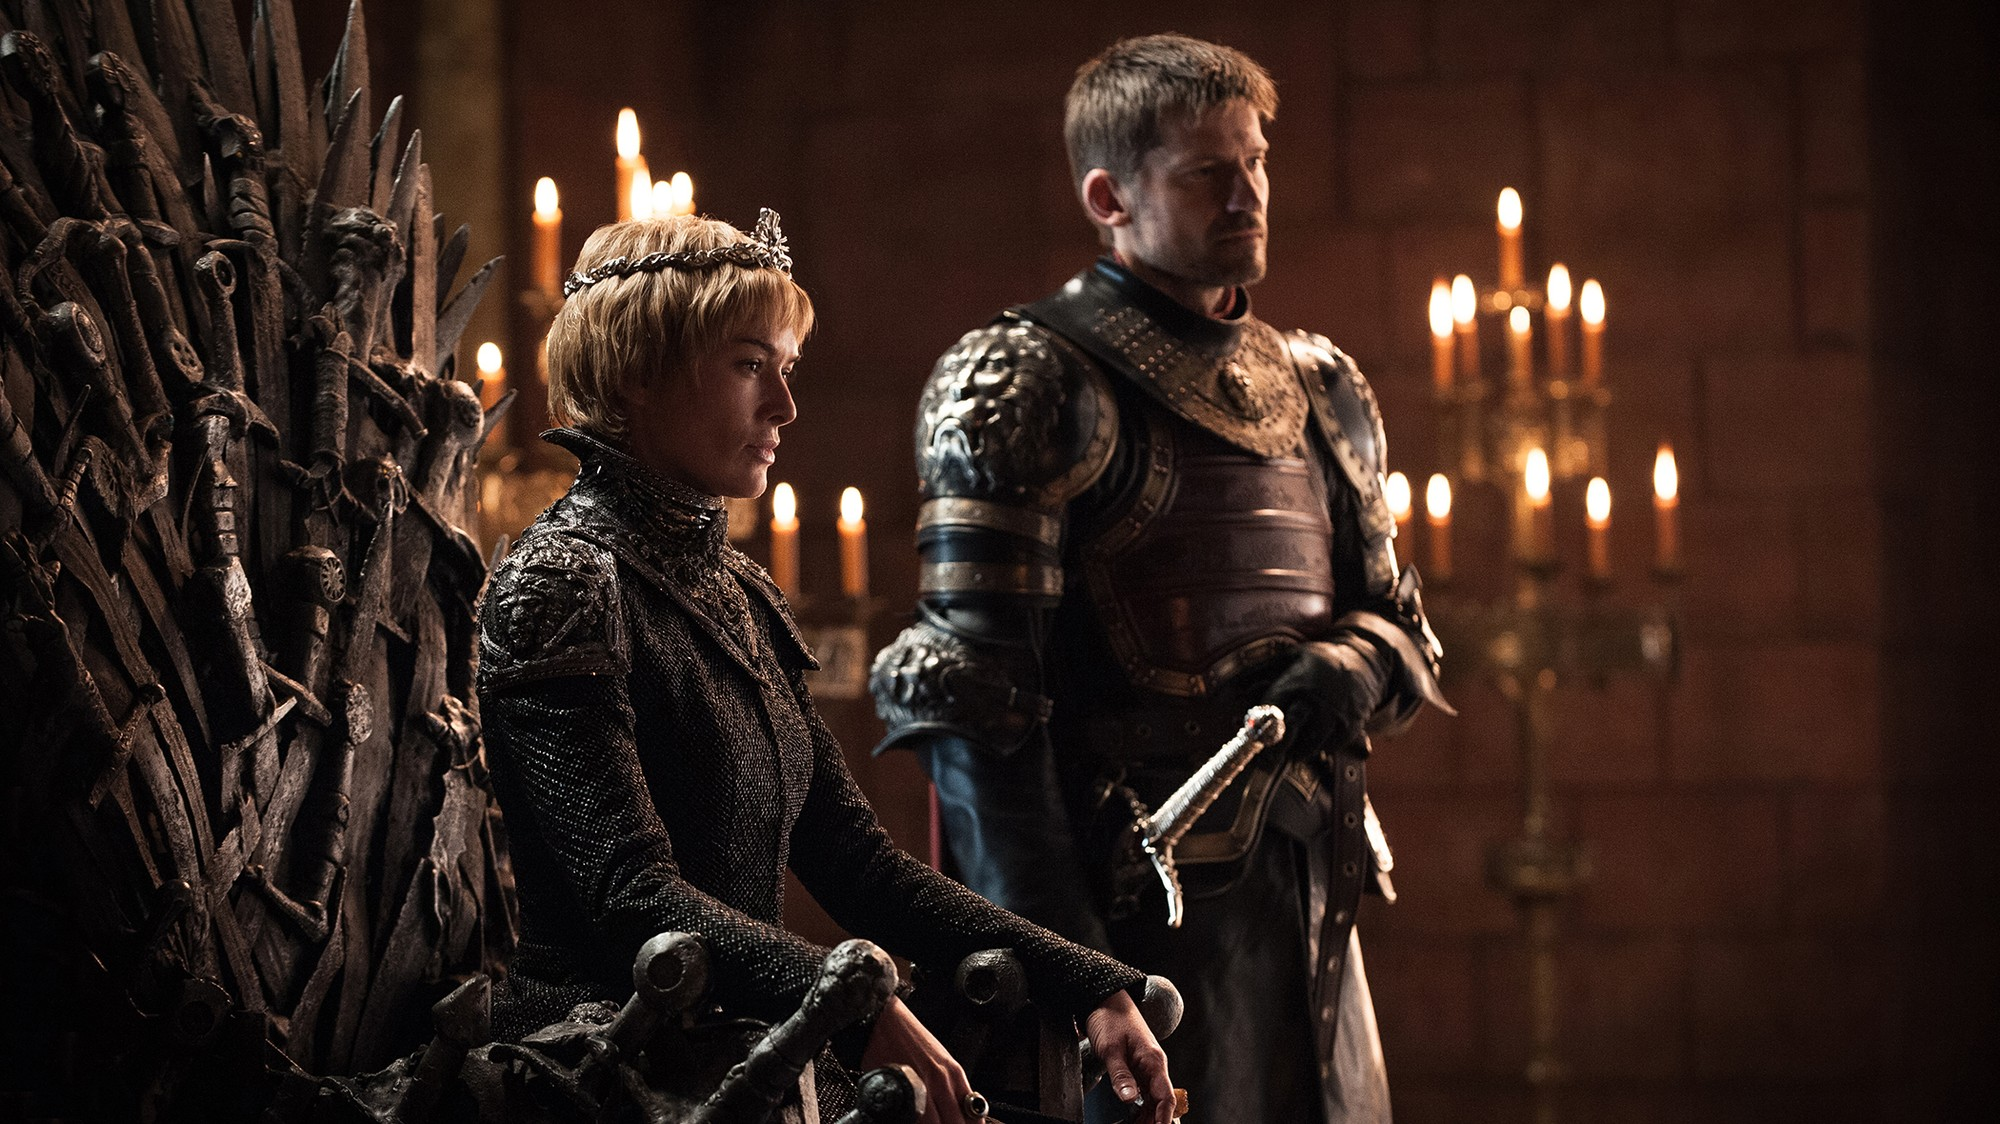 Everything You Need to Know About 'Game of Thrones' Before